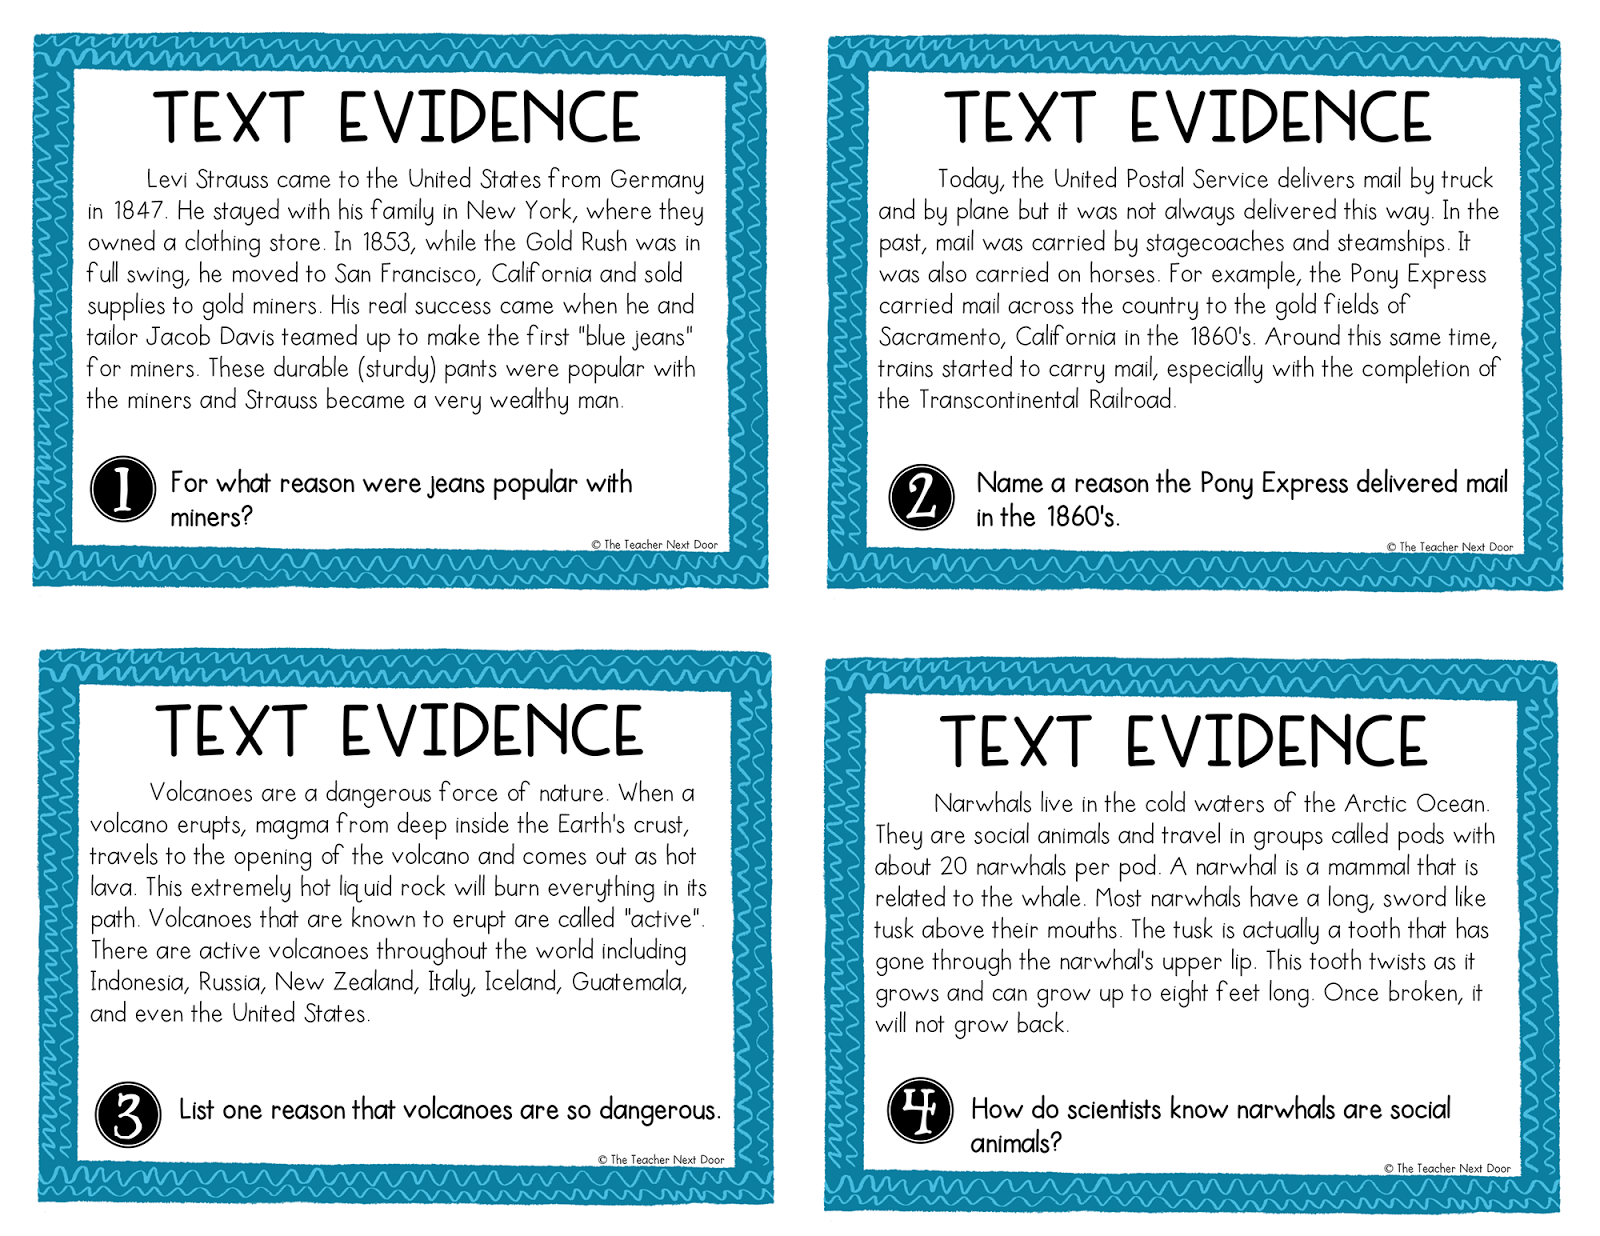 Find The Evidence Worksheet 3rd Grade Answers